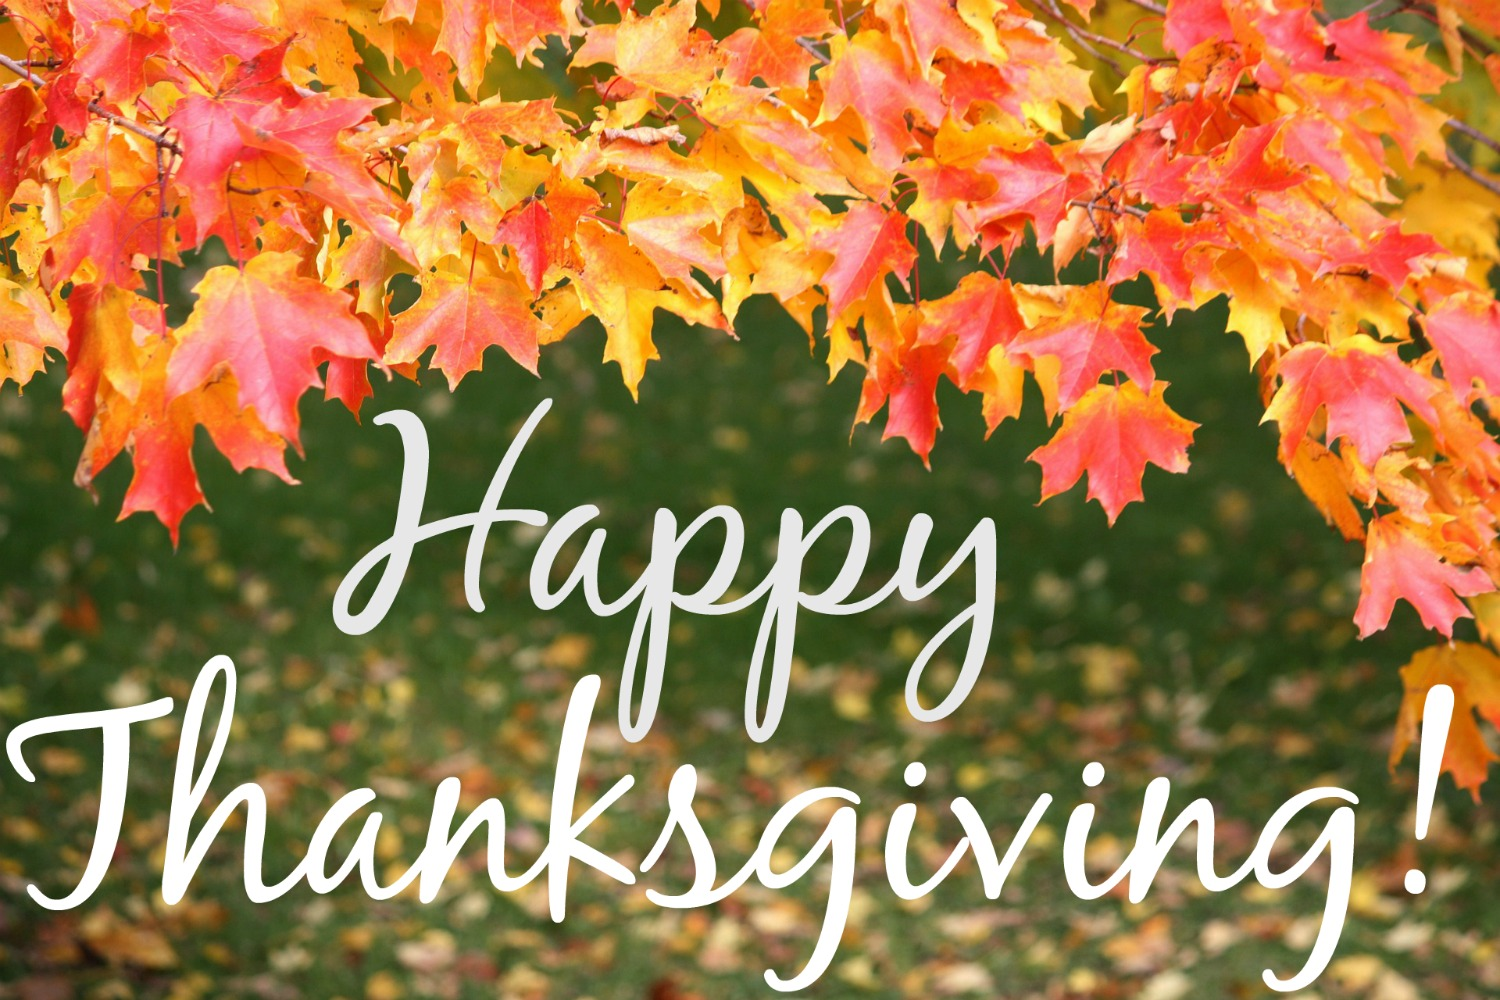 Wishing you wonderful readers the happiest of Thanksgivings! I hope your holiday includes tons of laughter and a mountain of delicious food!